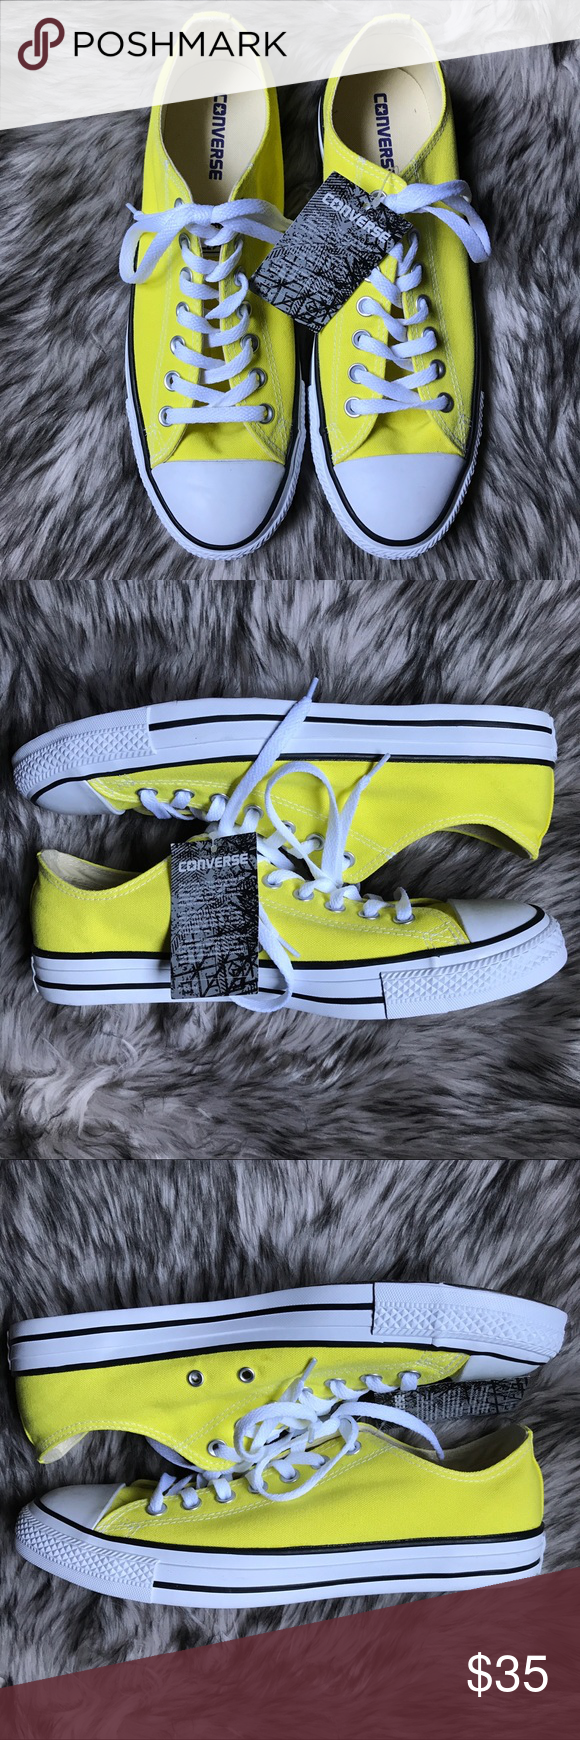 e99c0928e5134c Converse Chuck Taylor Fresh Yellow Low Top Sneaker NWT never been worn. No  scuffs or